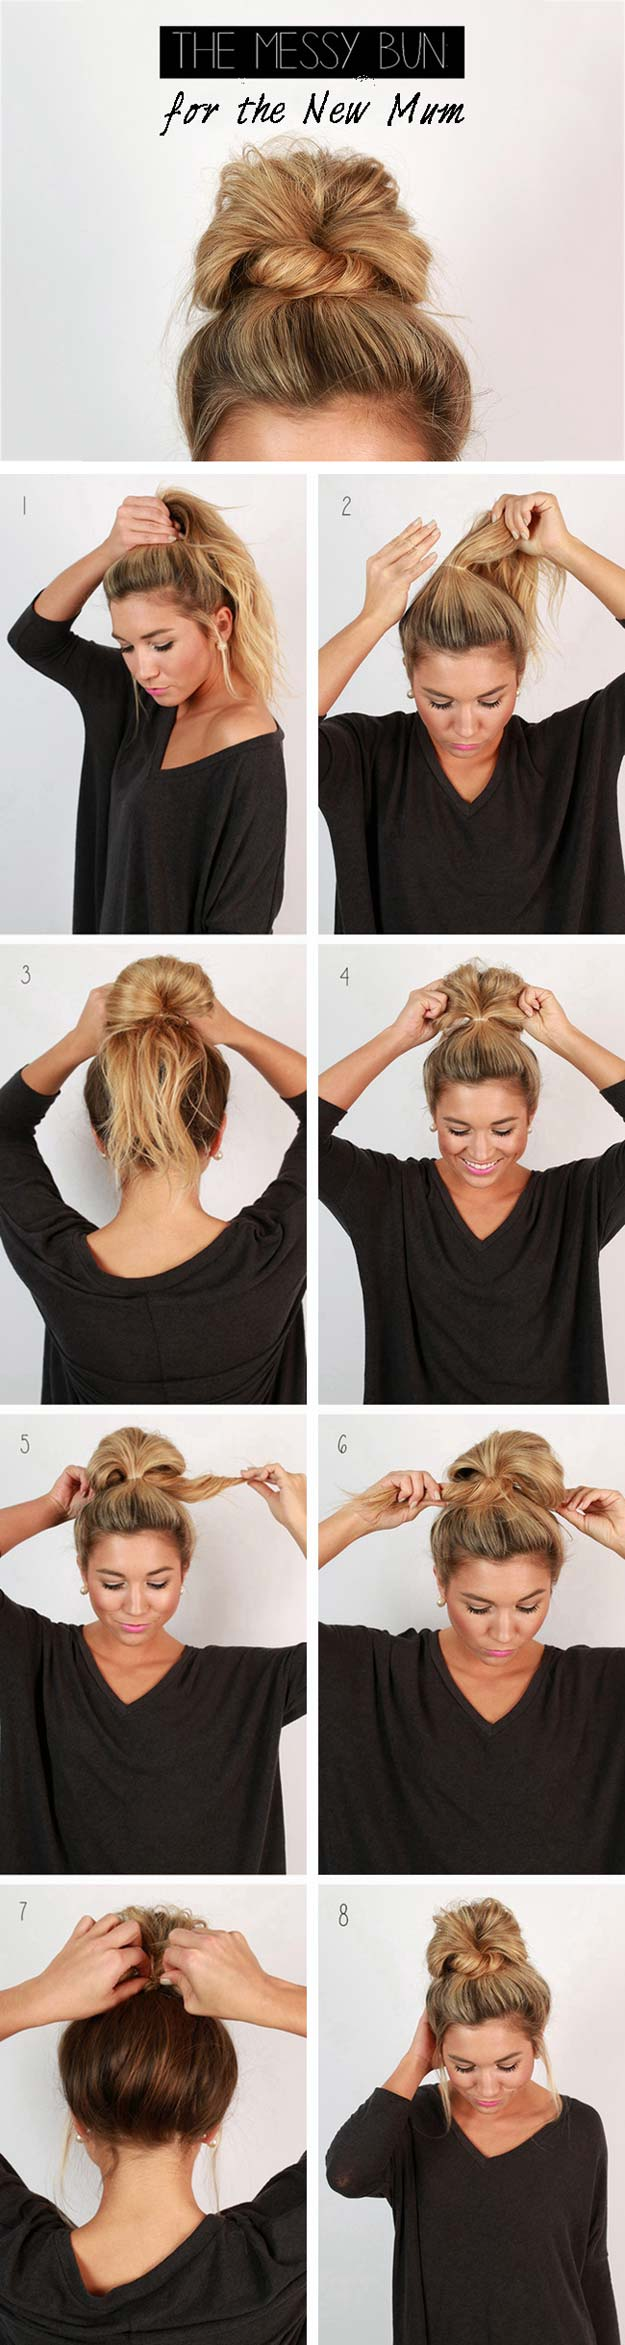 Groovy 12 Cute And Easy Hairstyles That Can Be Done In A Few Minutes Short Hairstyles For Black Women Fulllsitofus